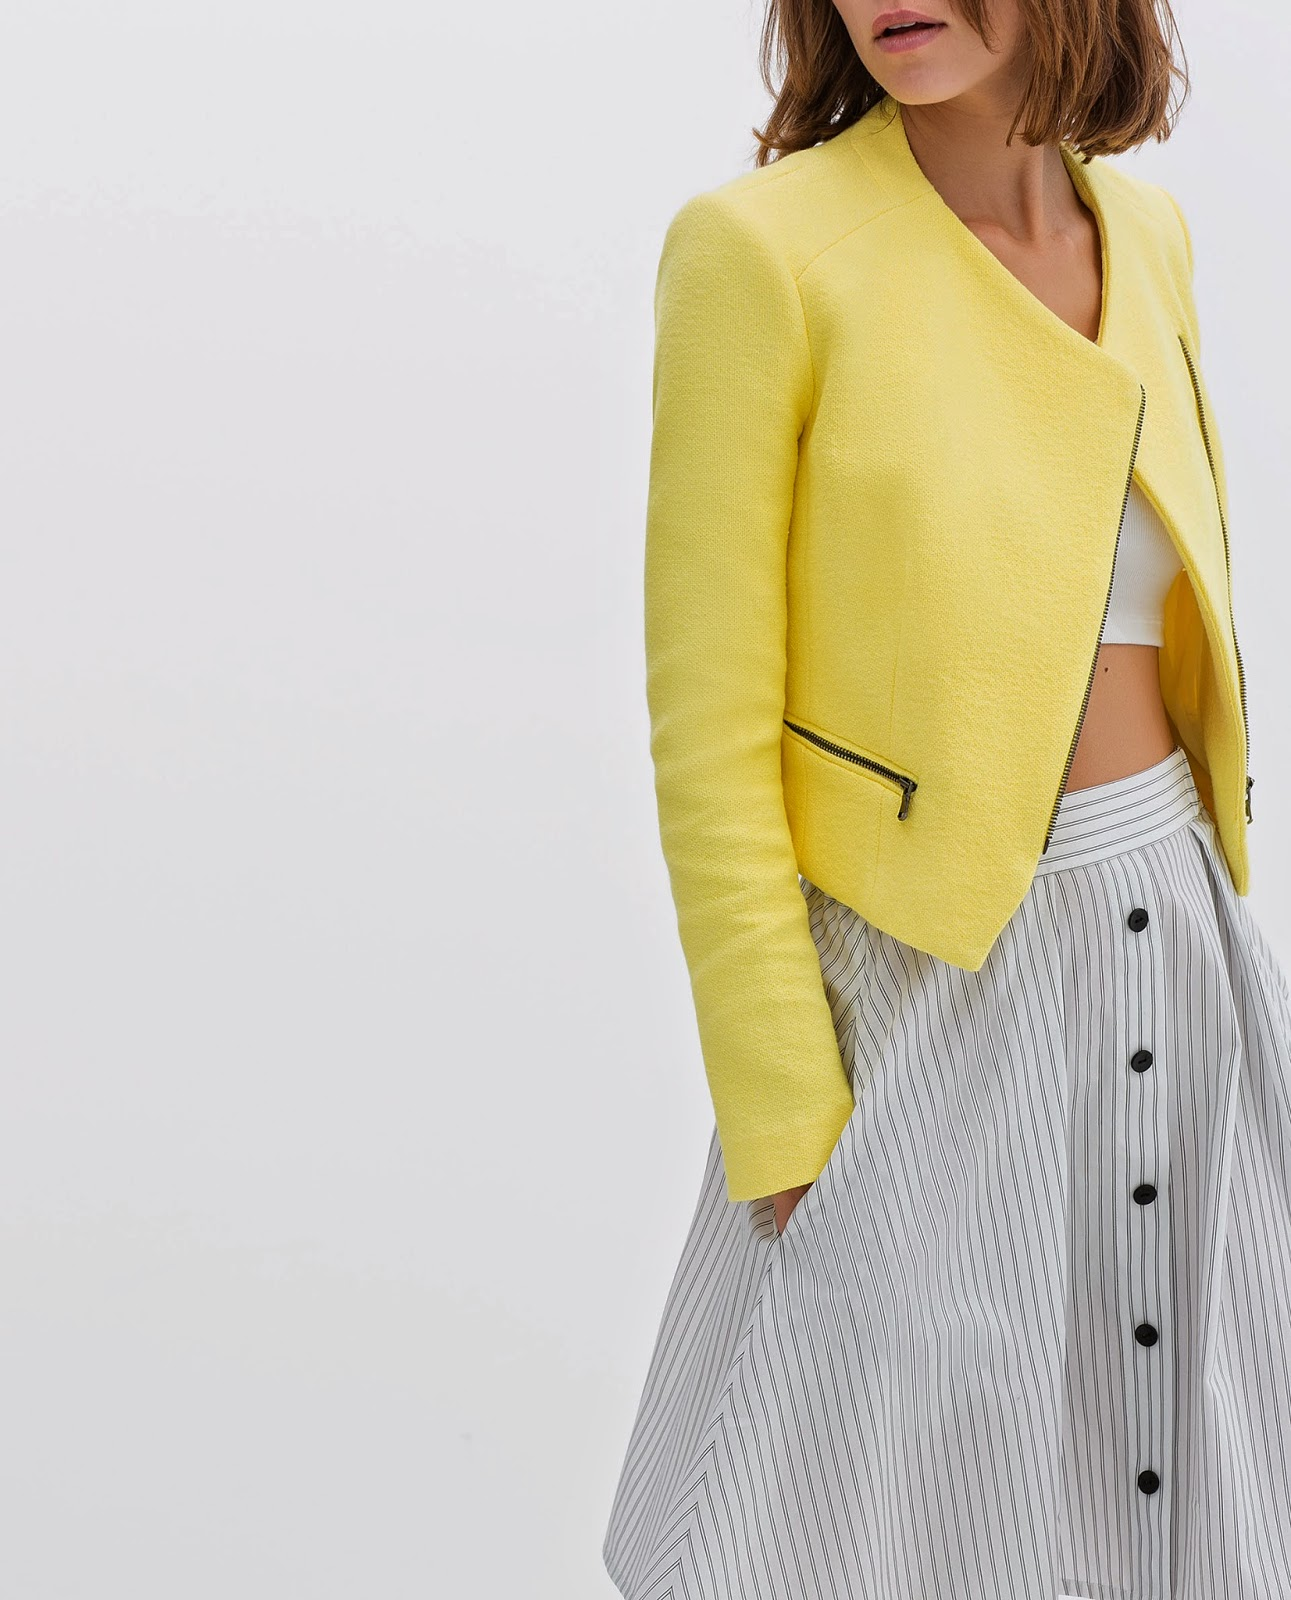 zara yellow cardigan